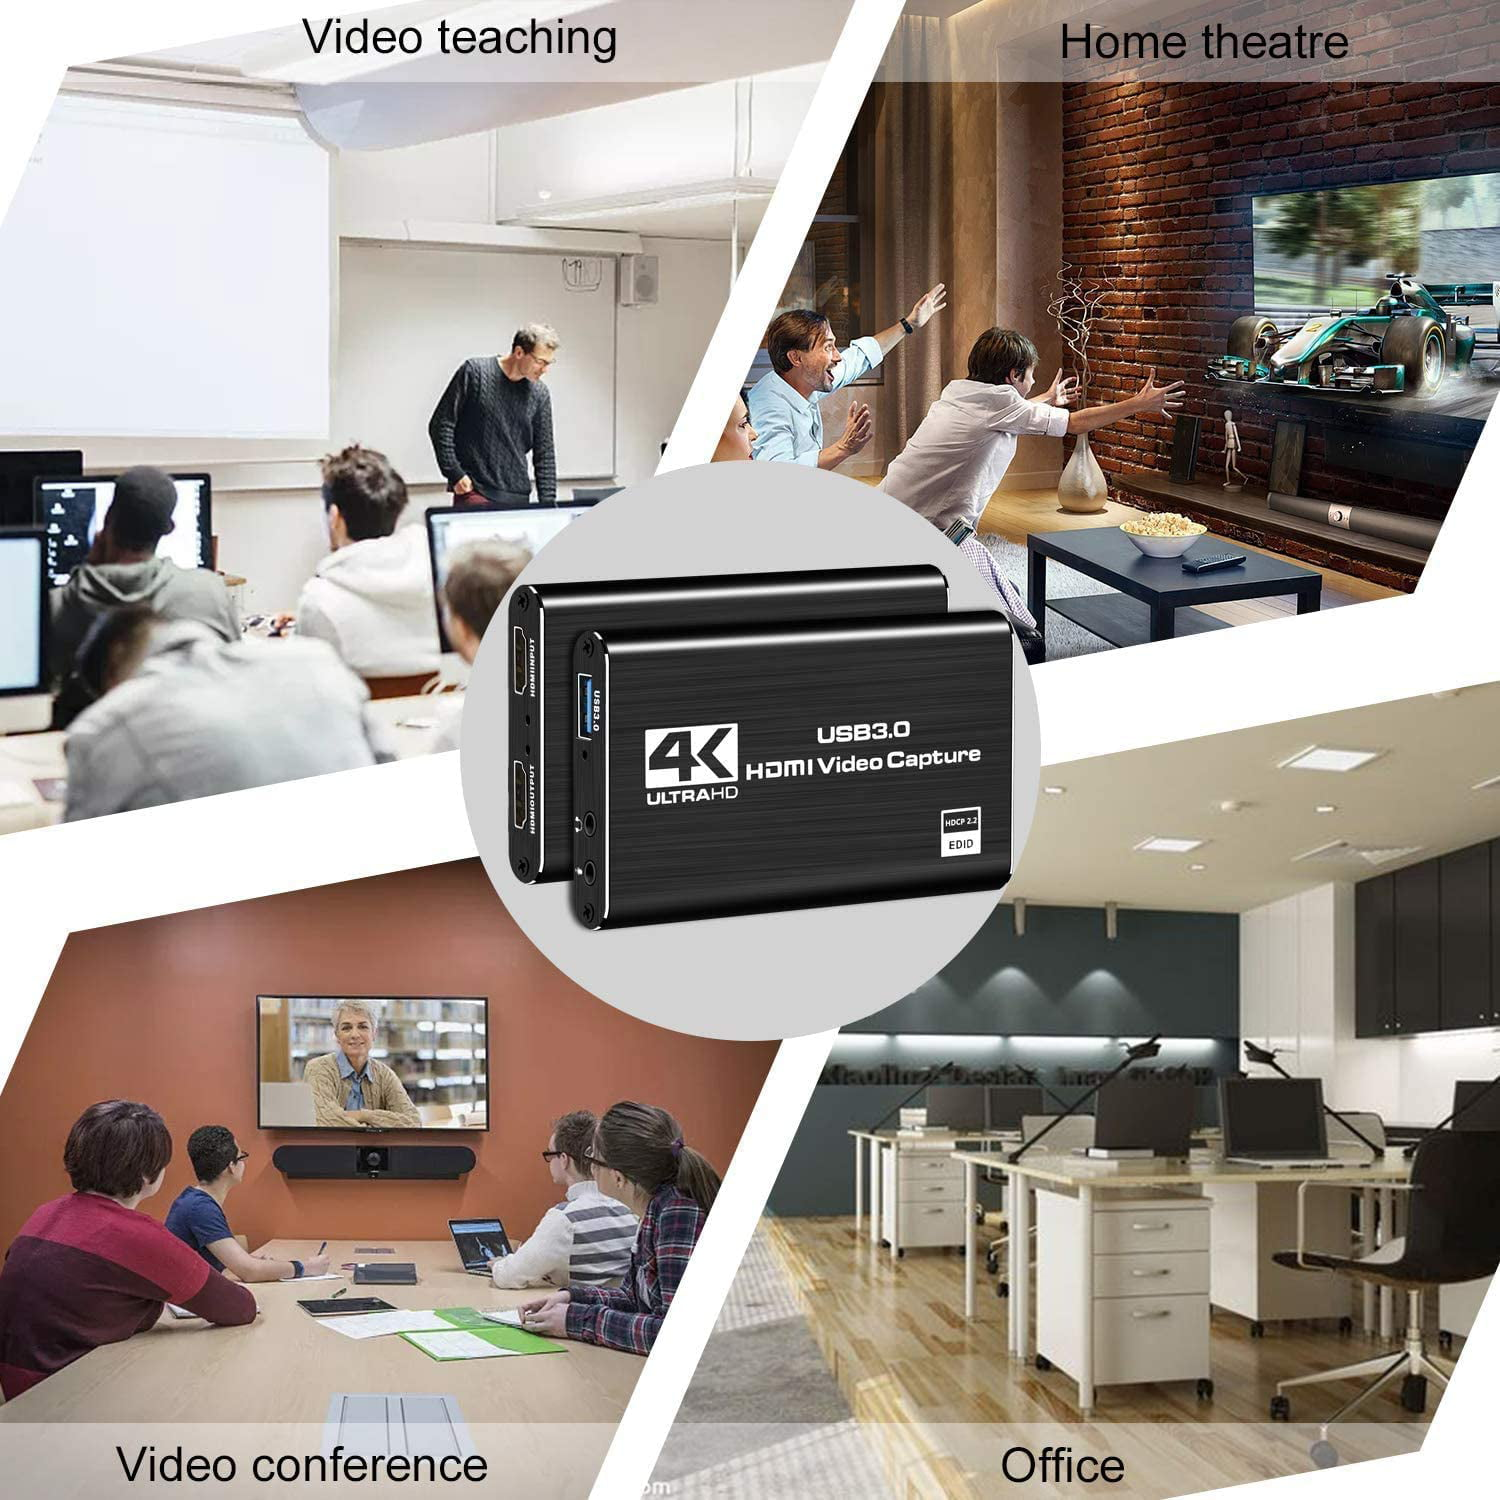 USB 3.0 HDMI Video Capture Device Live Streaming Broadcasting-Silver DIGITNOW Audio Video Capture Card Full HD 1080P for Game Recording